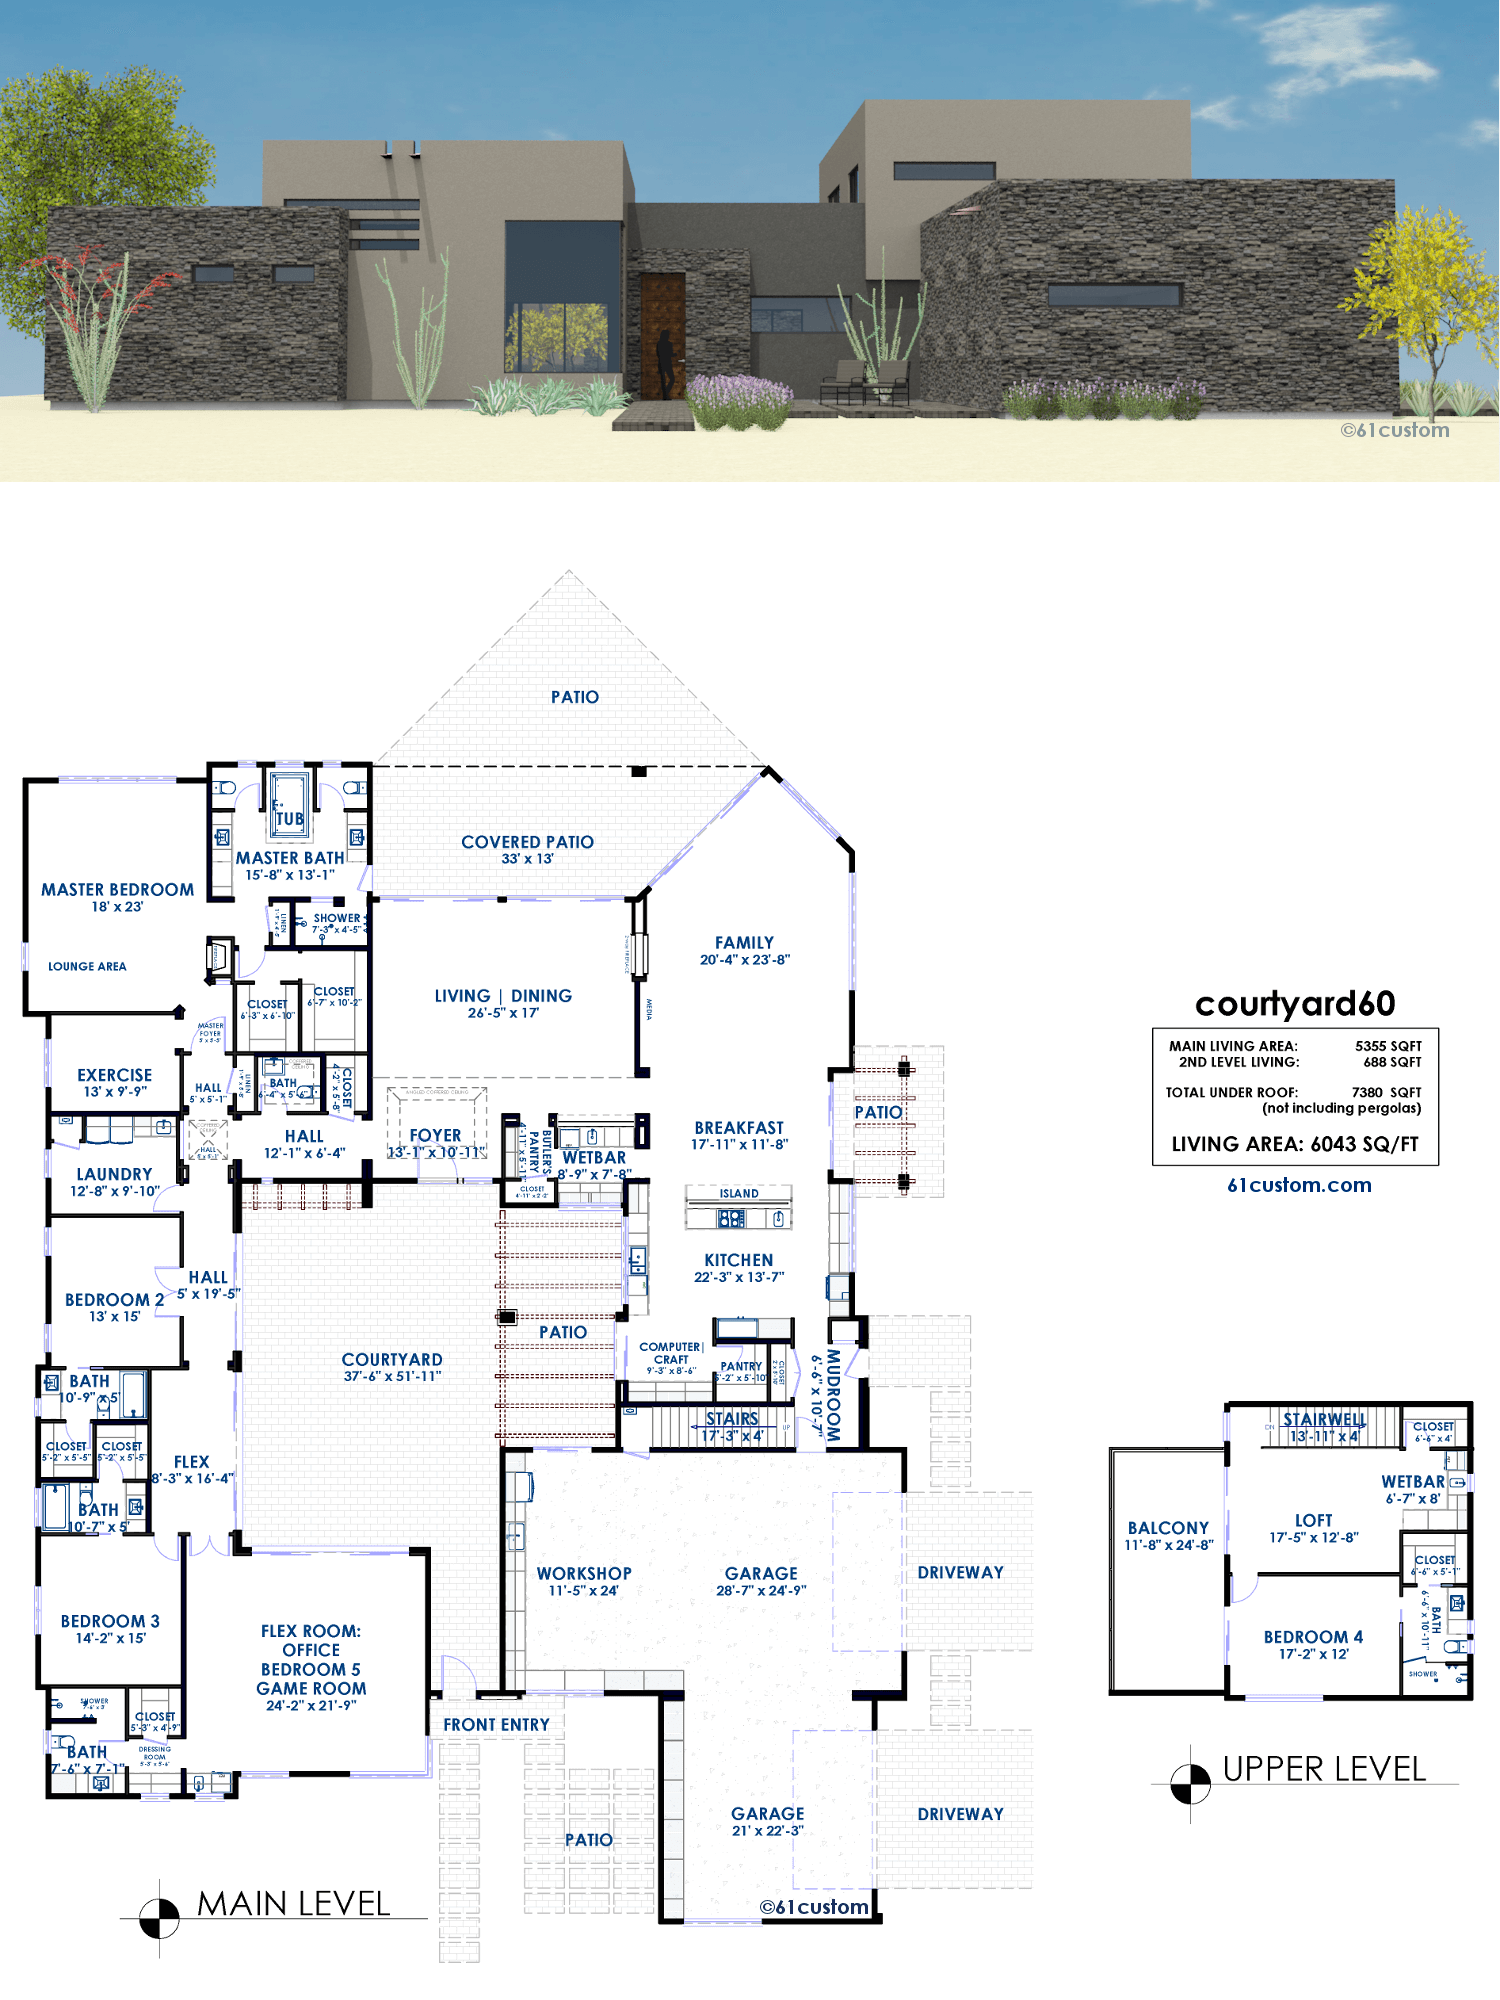 Luxury House Plans 61custom ontemporary & Modern House Plans - ^